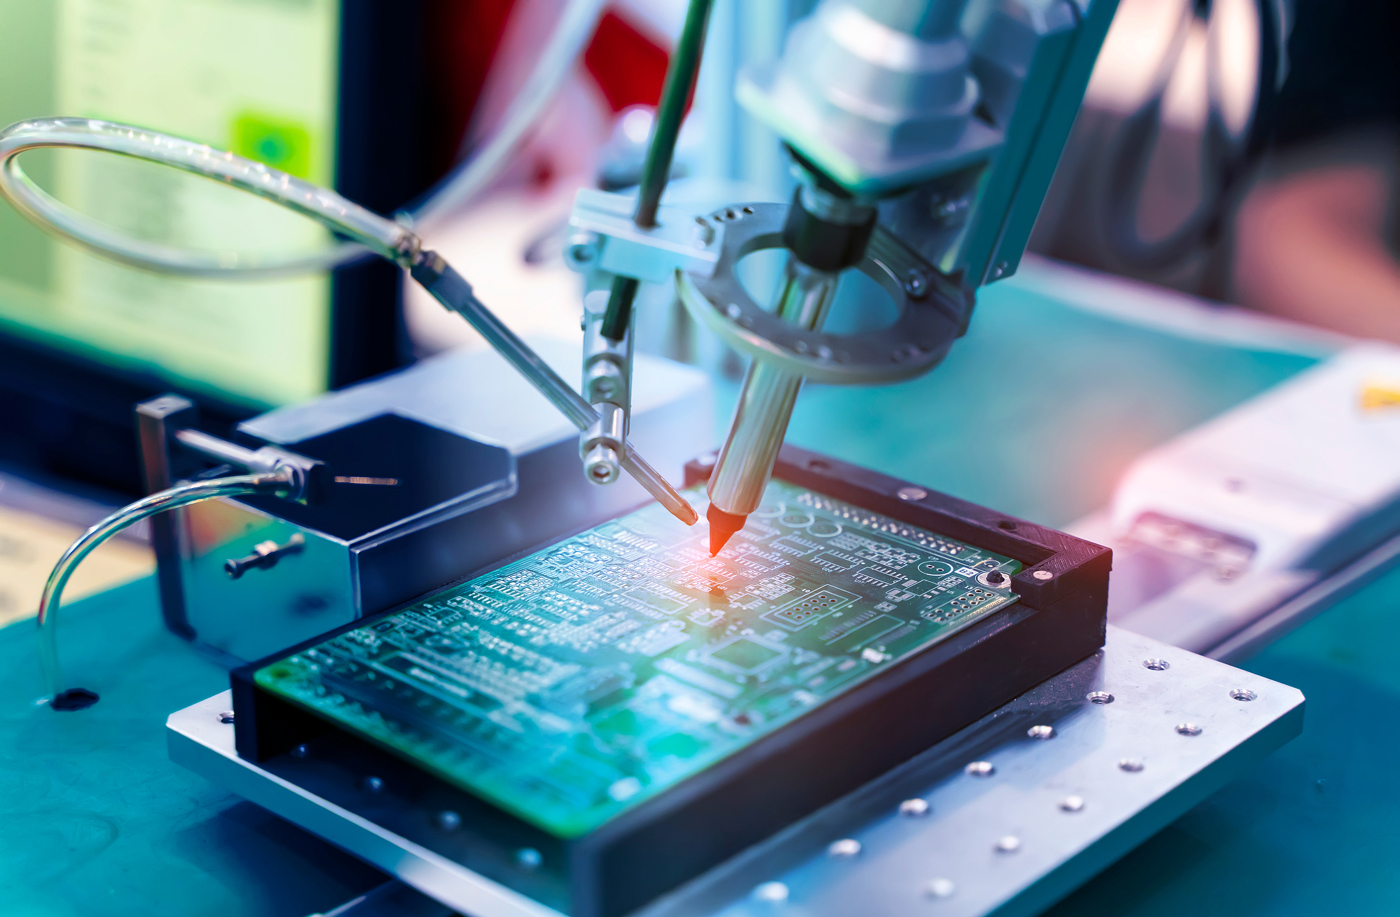 Semiconductor Stock Could Buck Sector Woes, Says Analyst